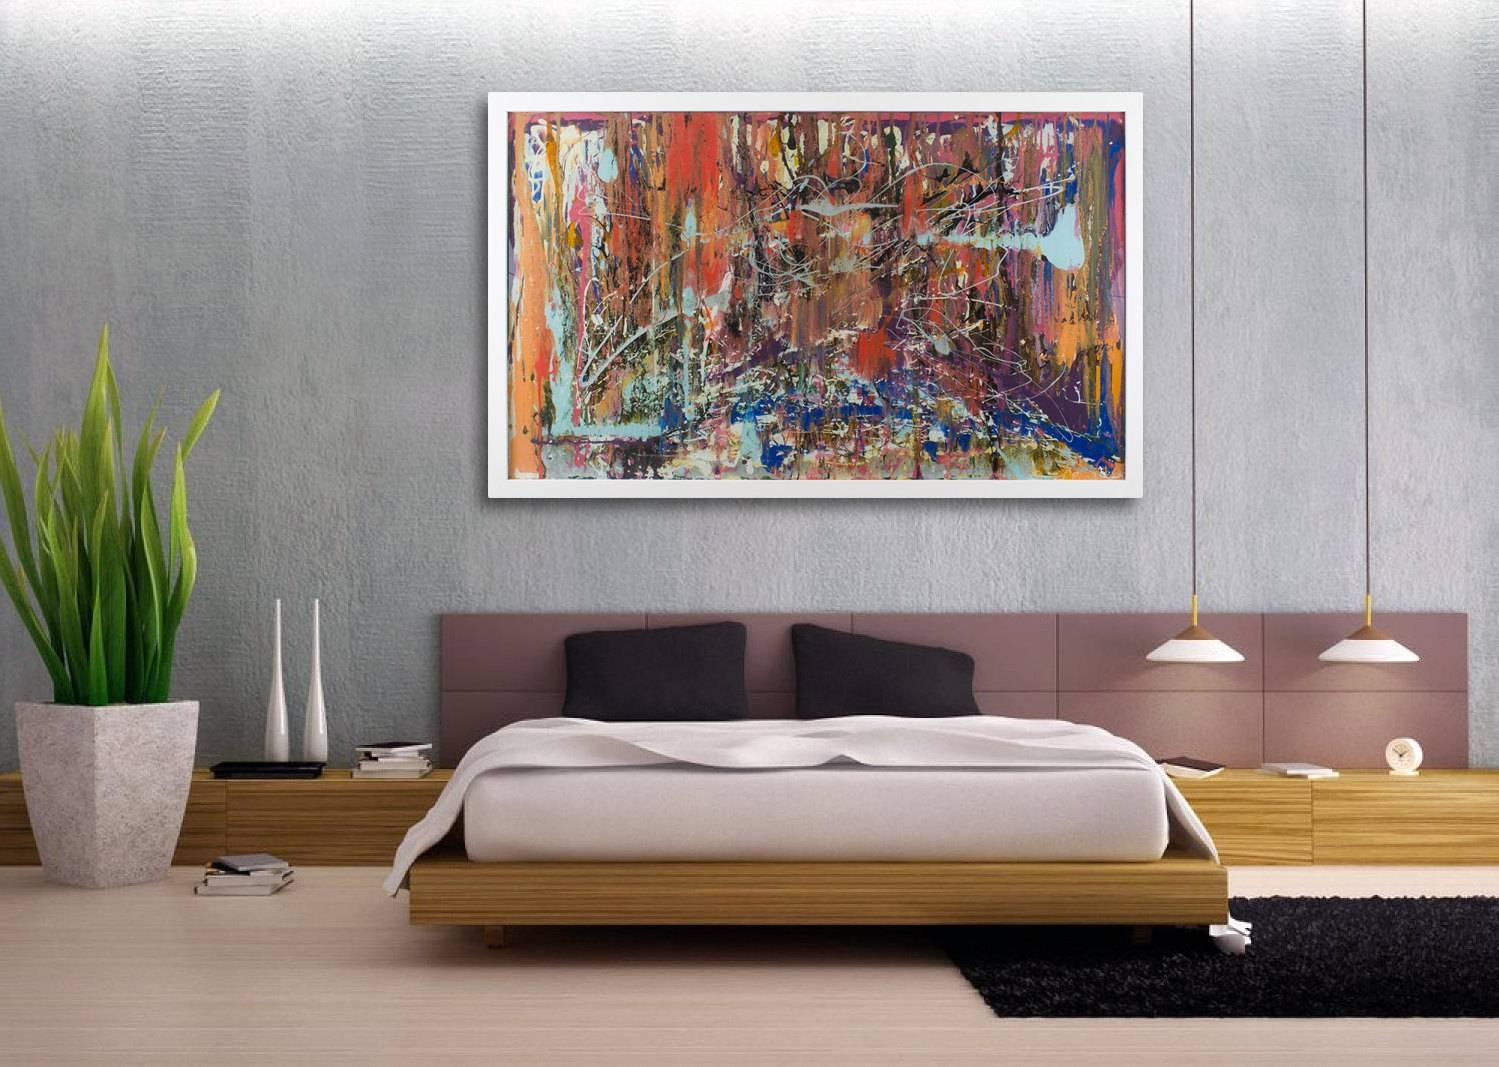 Extra Large Wall Art | Roselawnlutheran With Regard To Most Up To Date Oversized Modern Wall Art (Gallery 3 of 20)